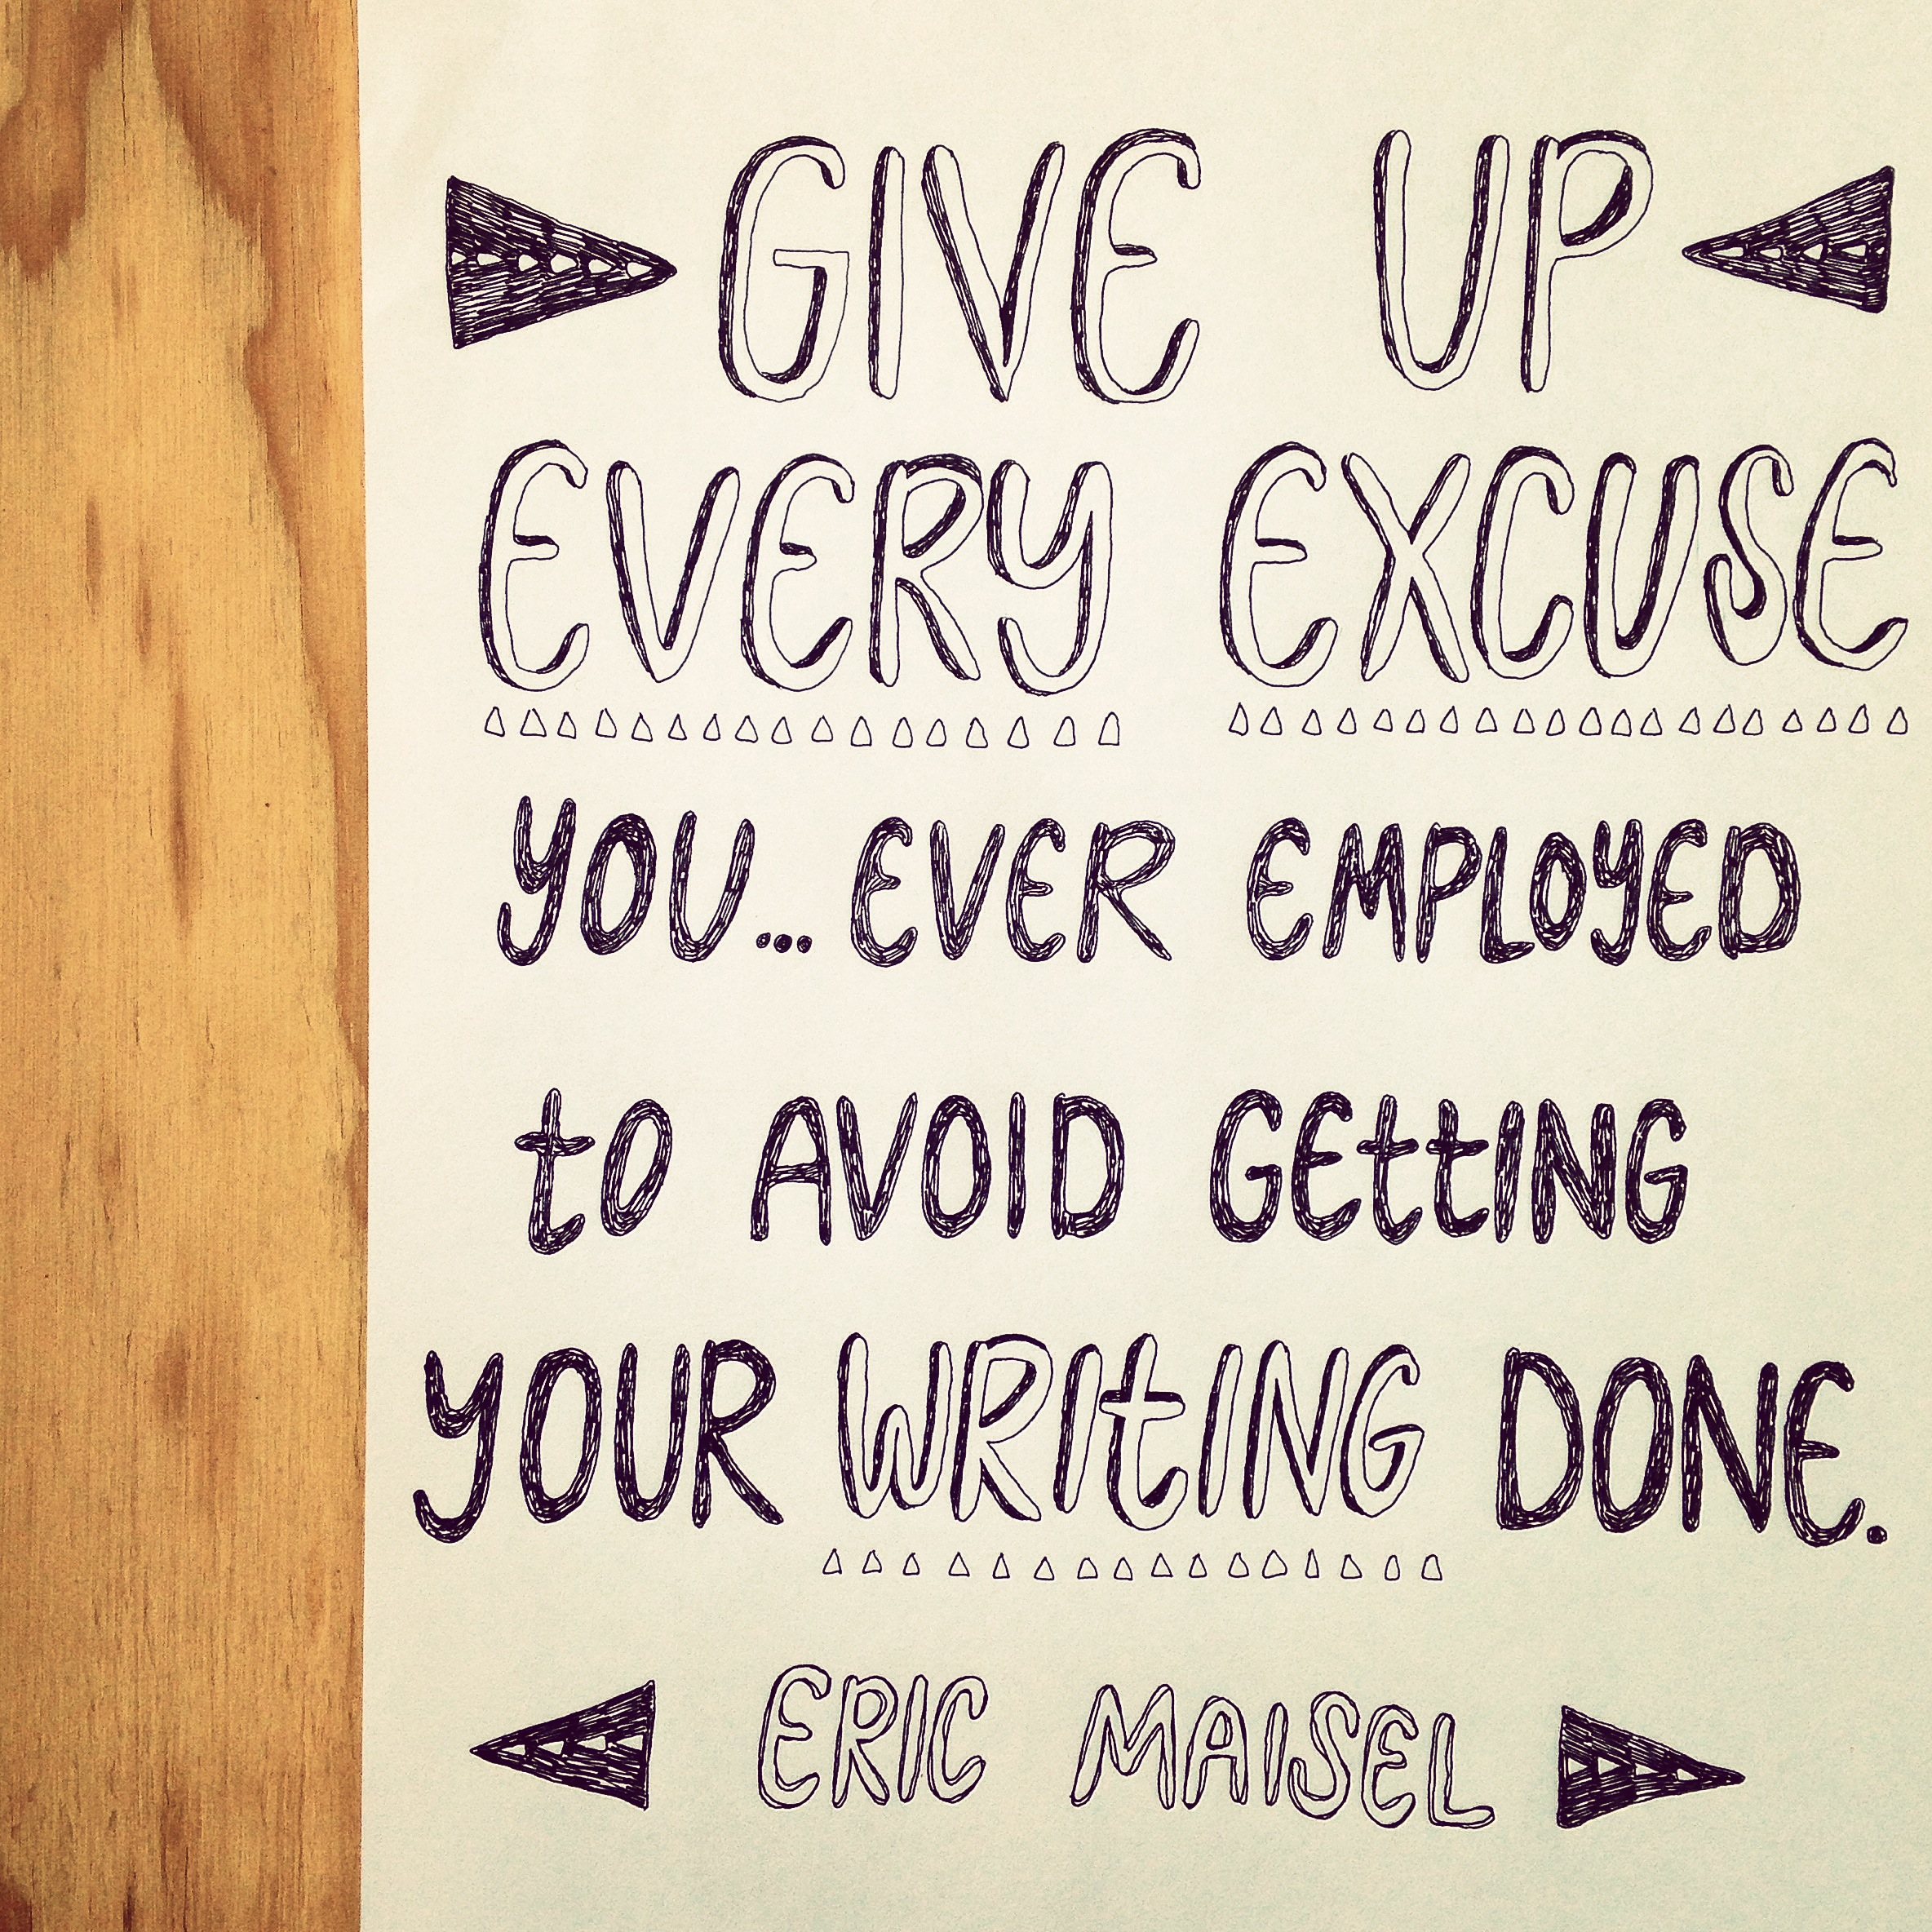 You gotta break up with all your excuses. Cold turkey. Walk away. And get back to your writing.   lucyflint.com